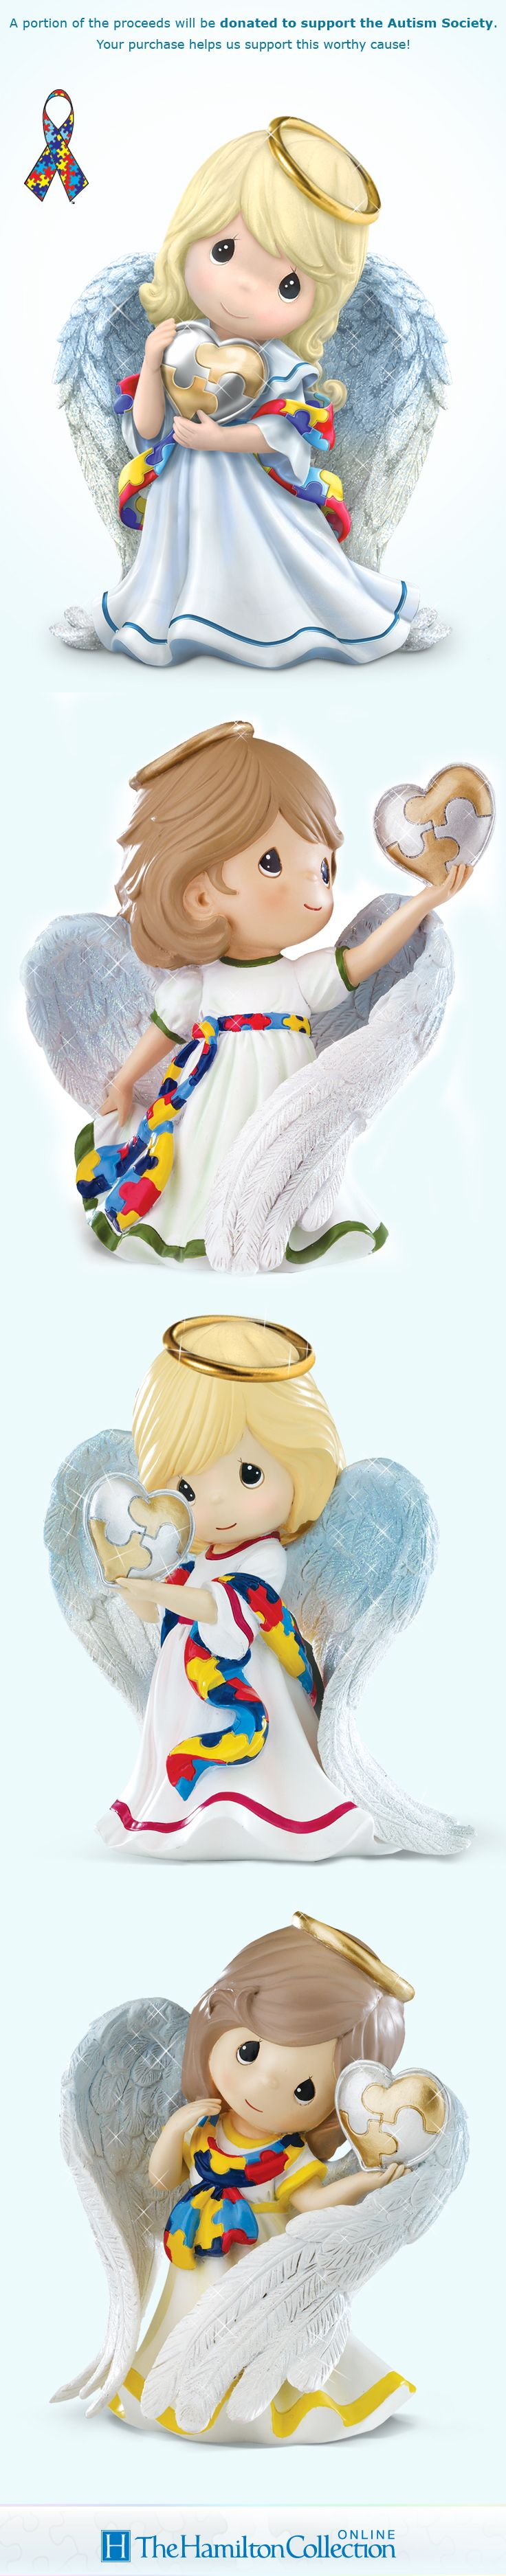 Share a sweet message of Autism support with this Precious Moments Heavenly Blessings Figurine Collection.